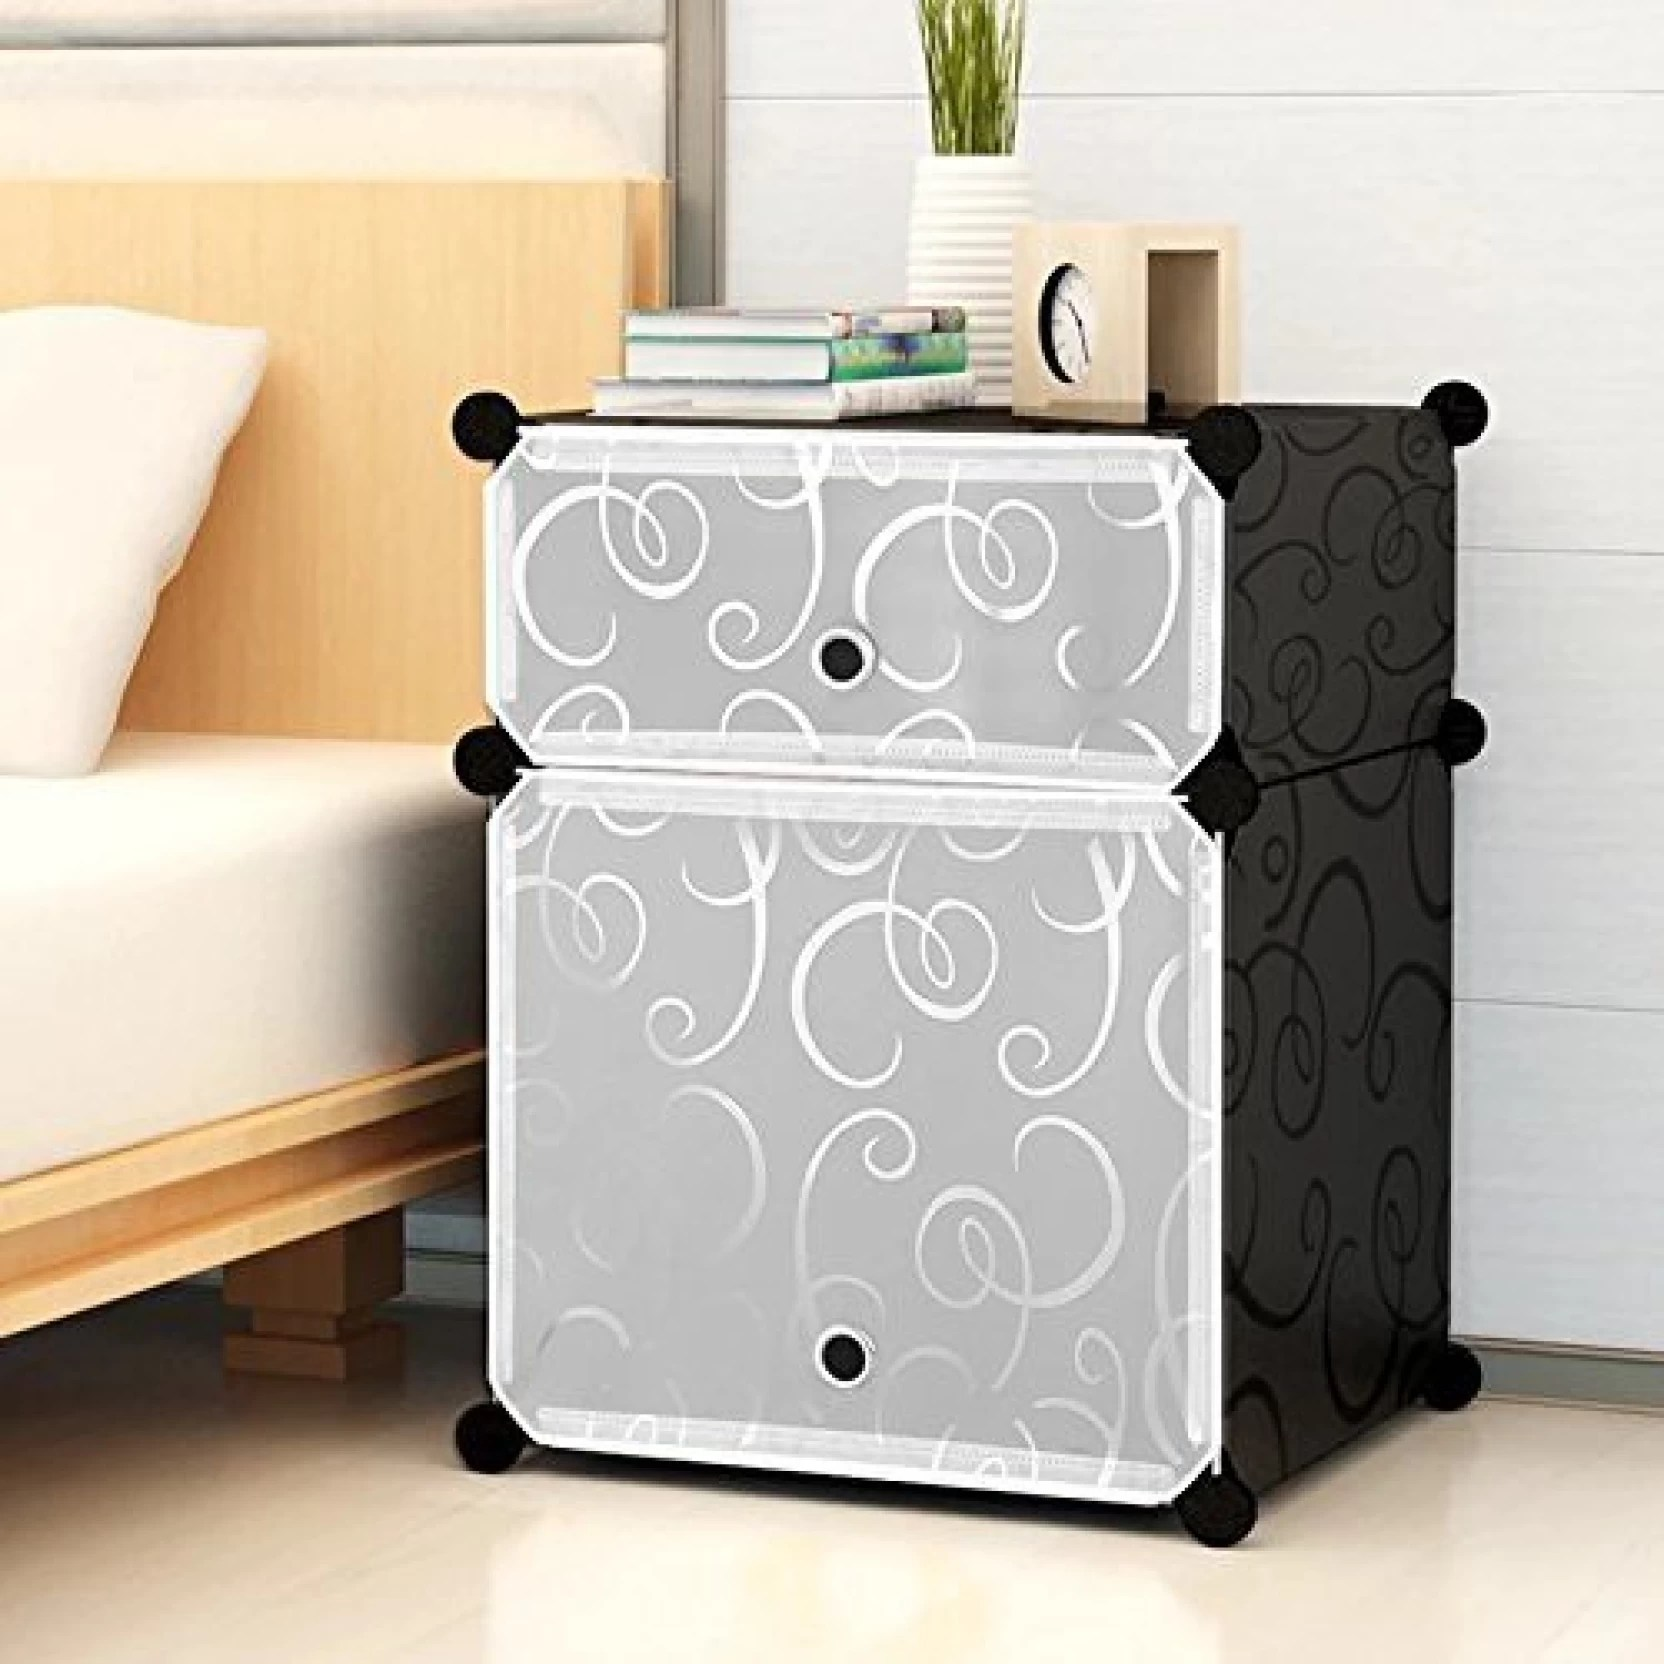 House Of Quirk Portable Bedside Table Cube Storage Organizer